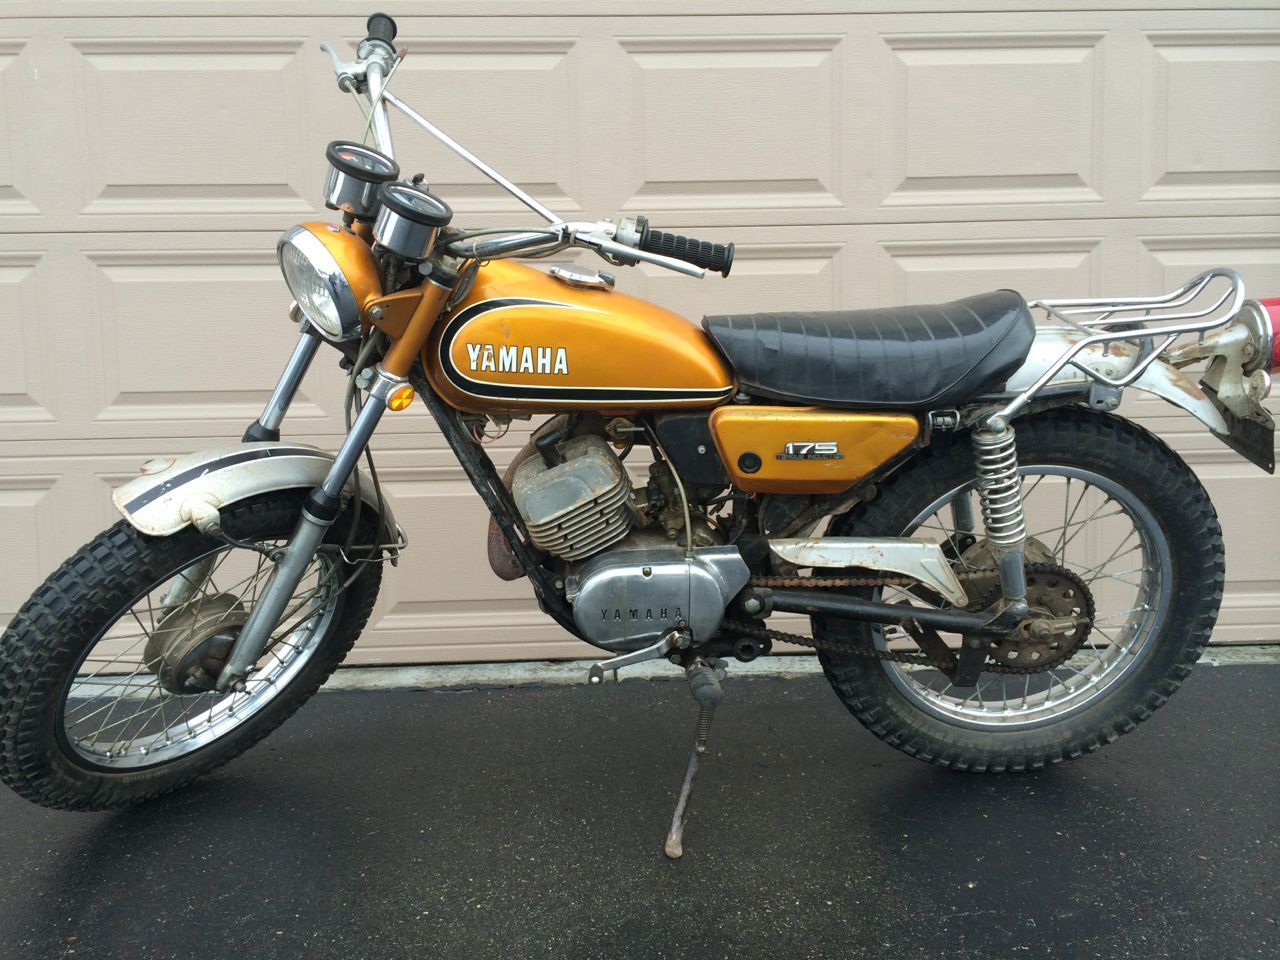 Yamaha 175 photo - 1